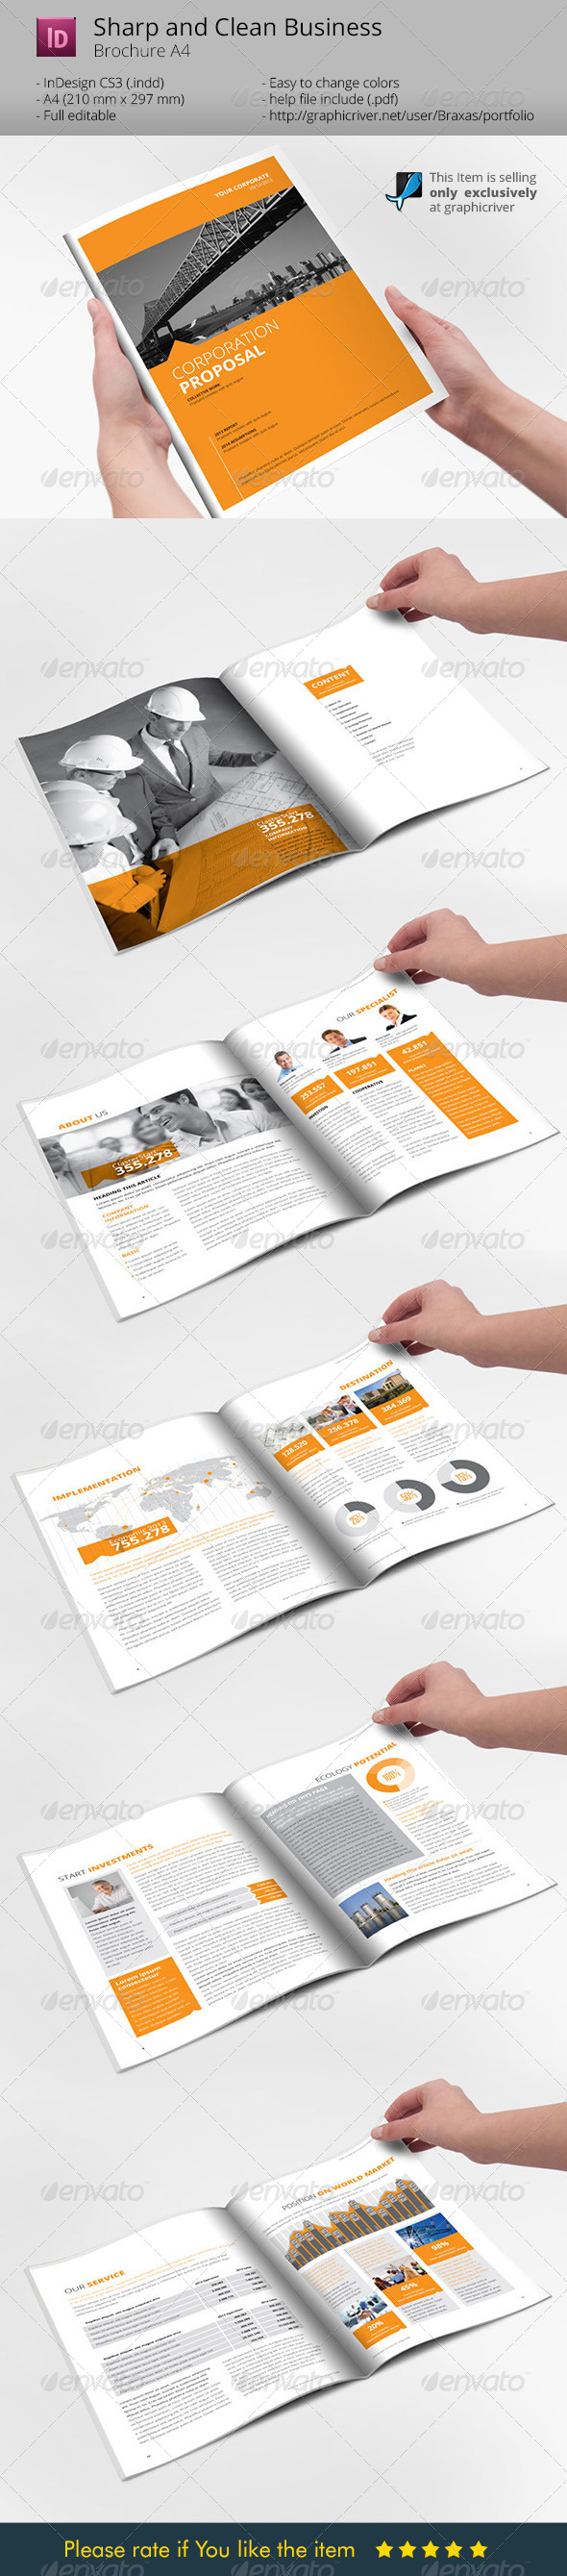 GraphicRiver Sharp and Clean Business Brochure 6500744